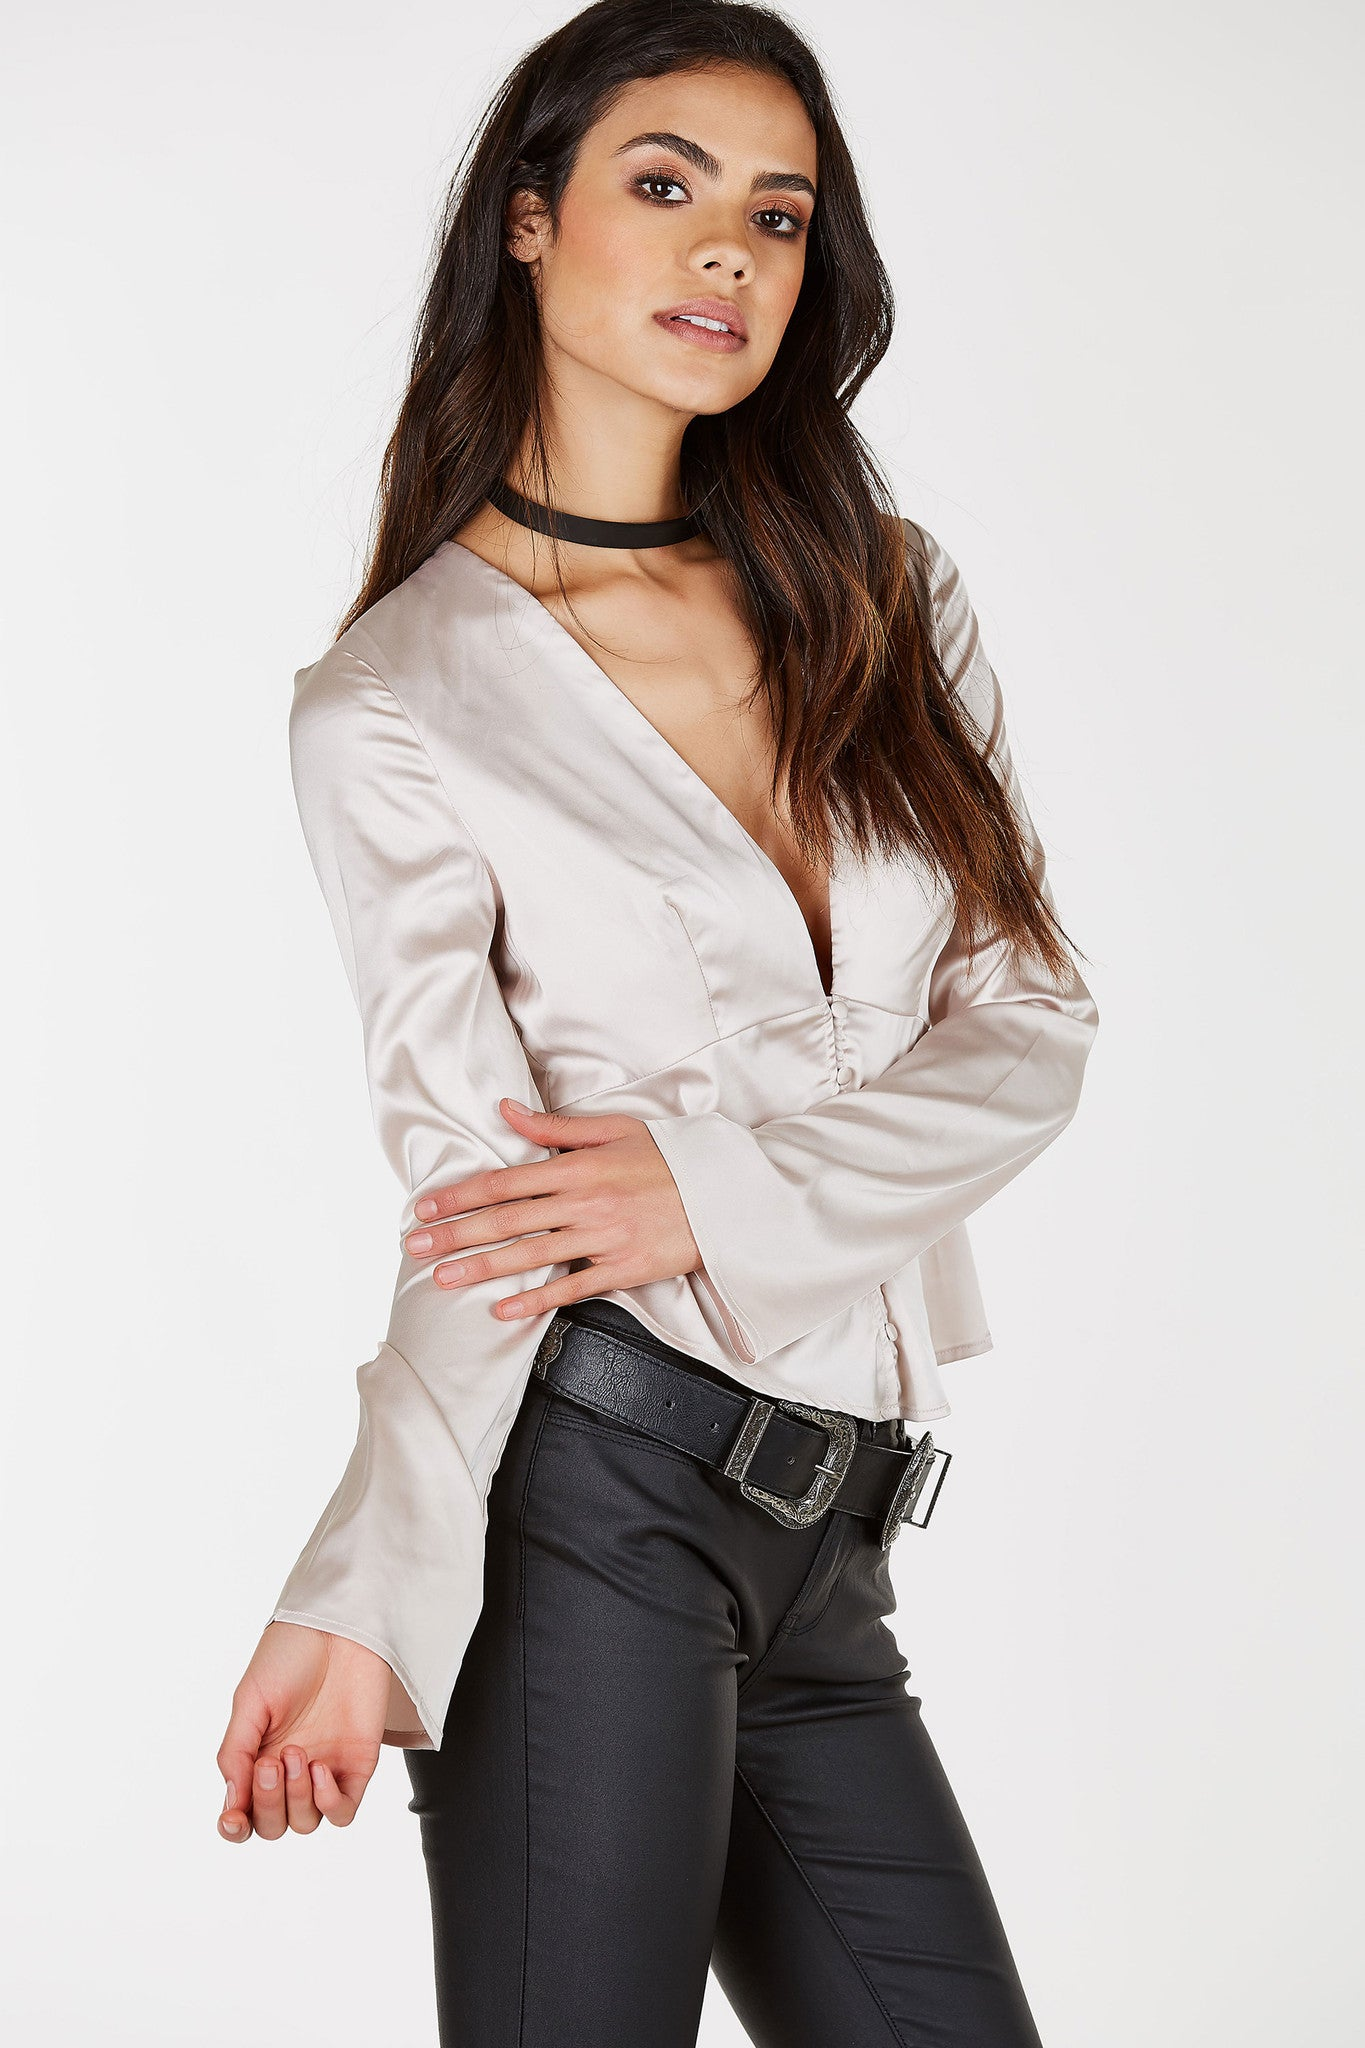 A smooth satin finish blouse with relaxed long sleeves to welcome the new Season. Dainty button detailing down the front with a bold deep cut neckline. Layer a lace bralette underneath and style with classic blue denims and heeled booties!